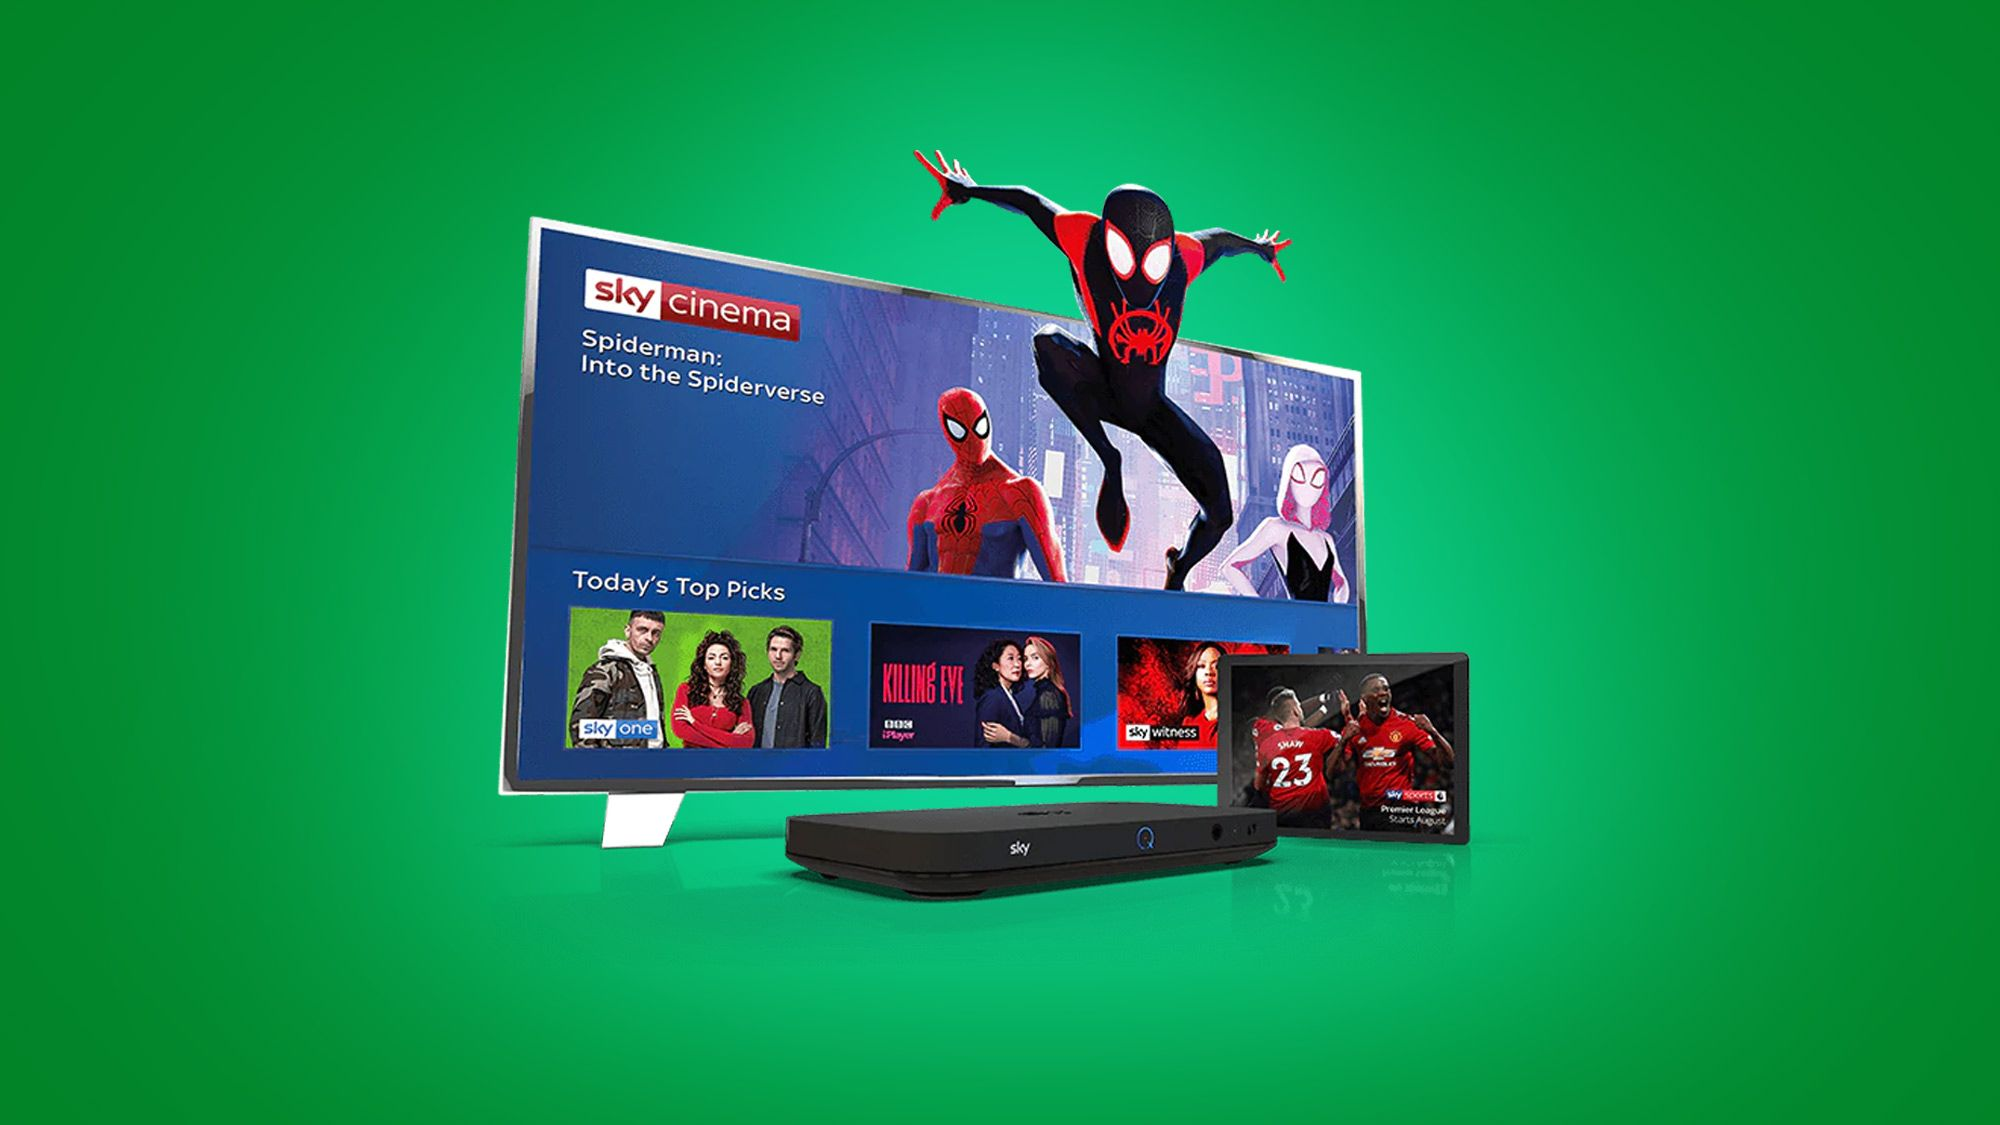 Save Up To 250 With These Sky Tv Deals With Sky Sports And Cinema Bundle Options Tv Deals Sky Tv Movie Releases